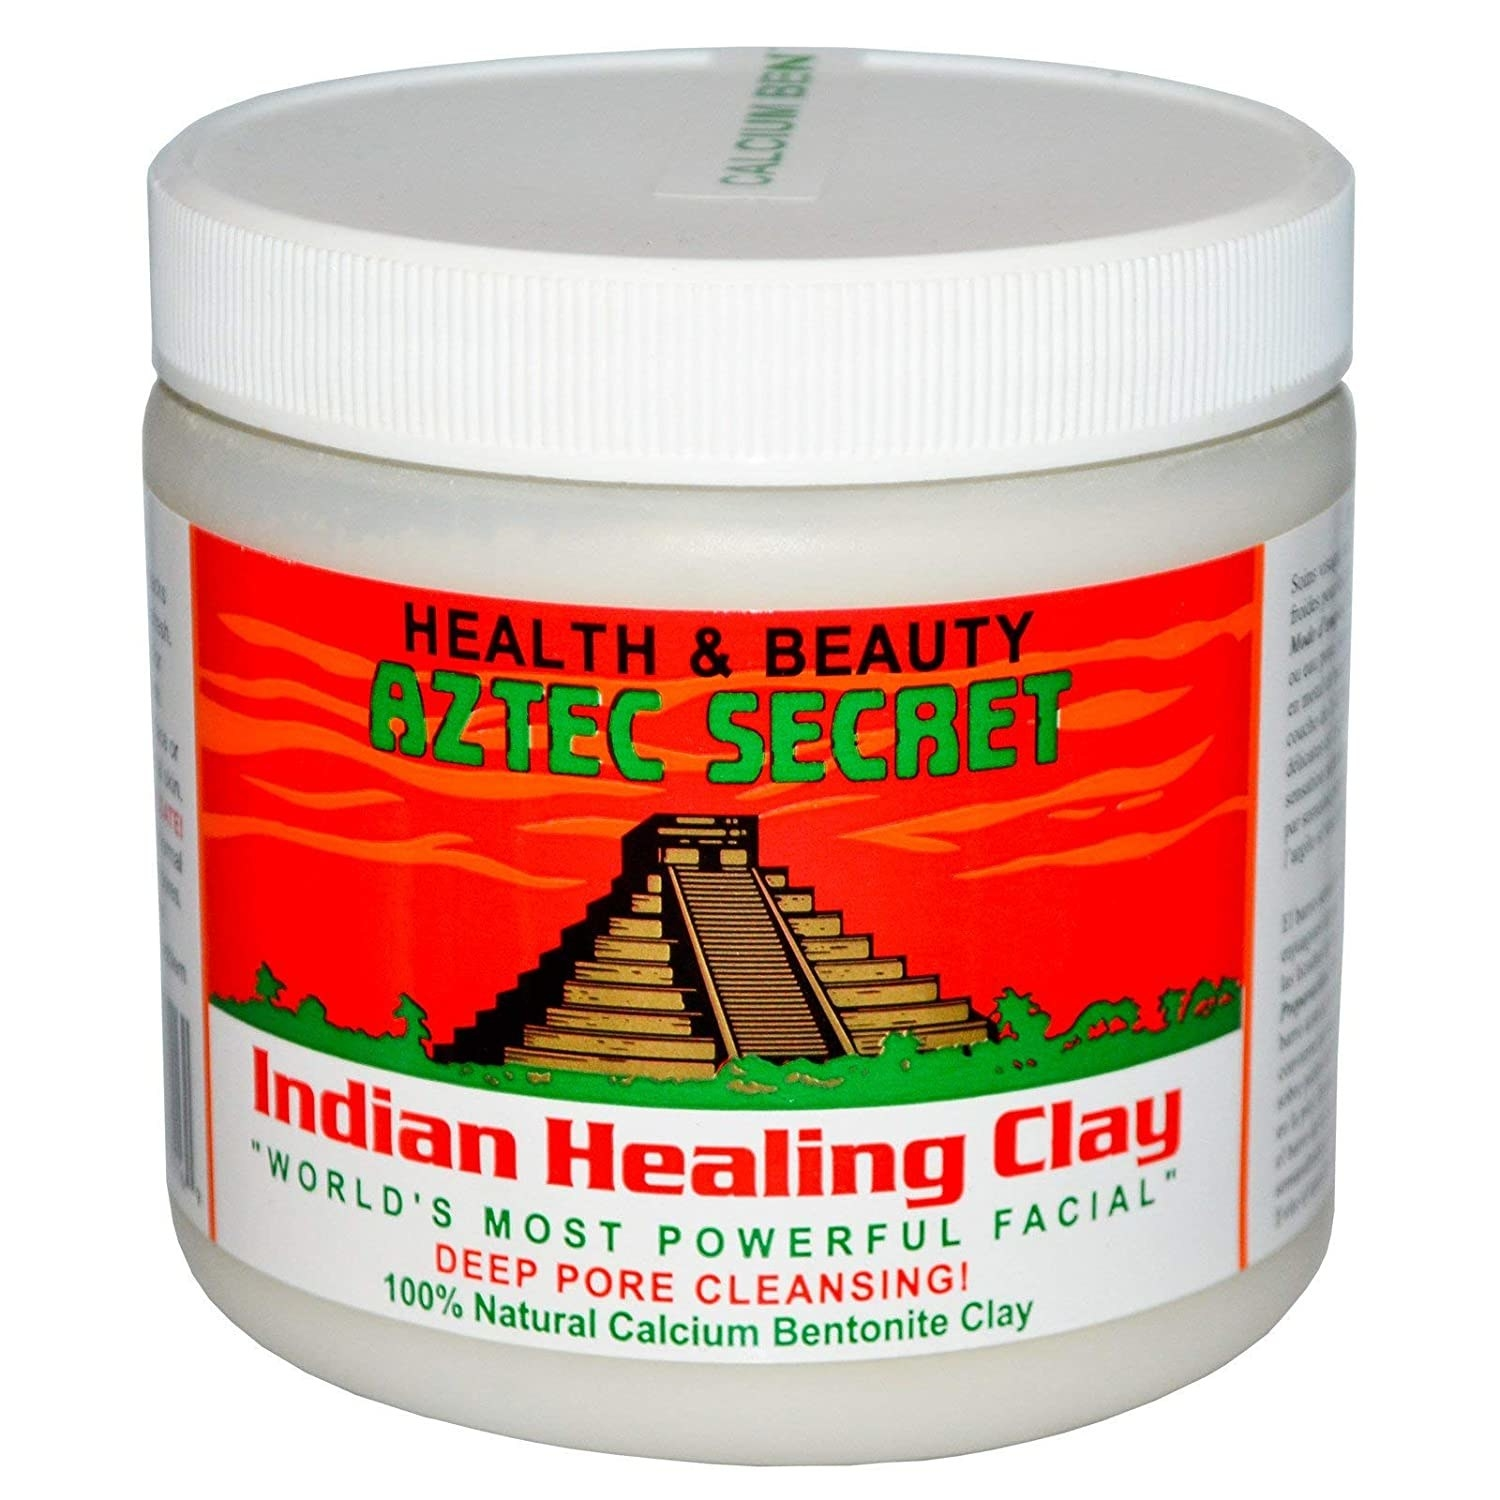 Packaging of the healing clay face mask